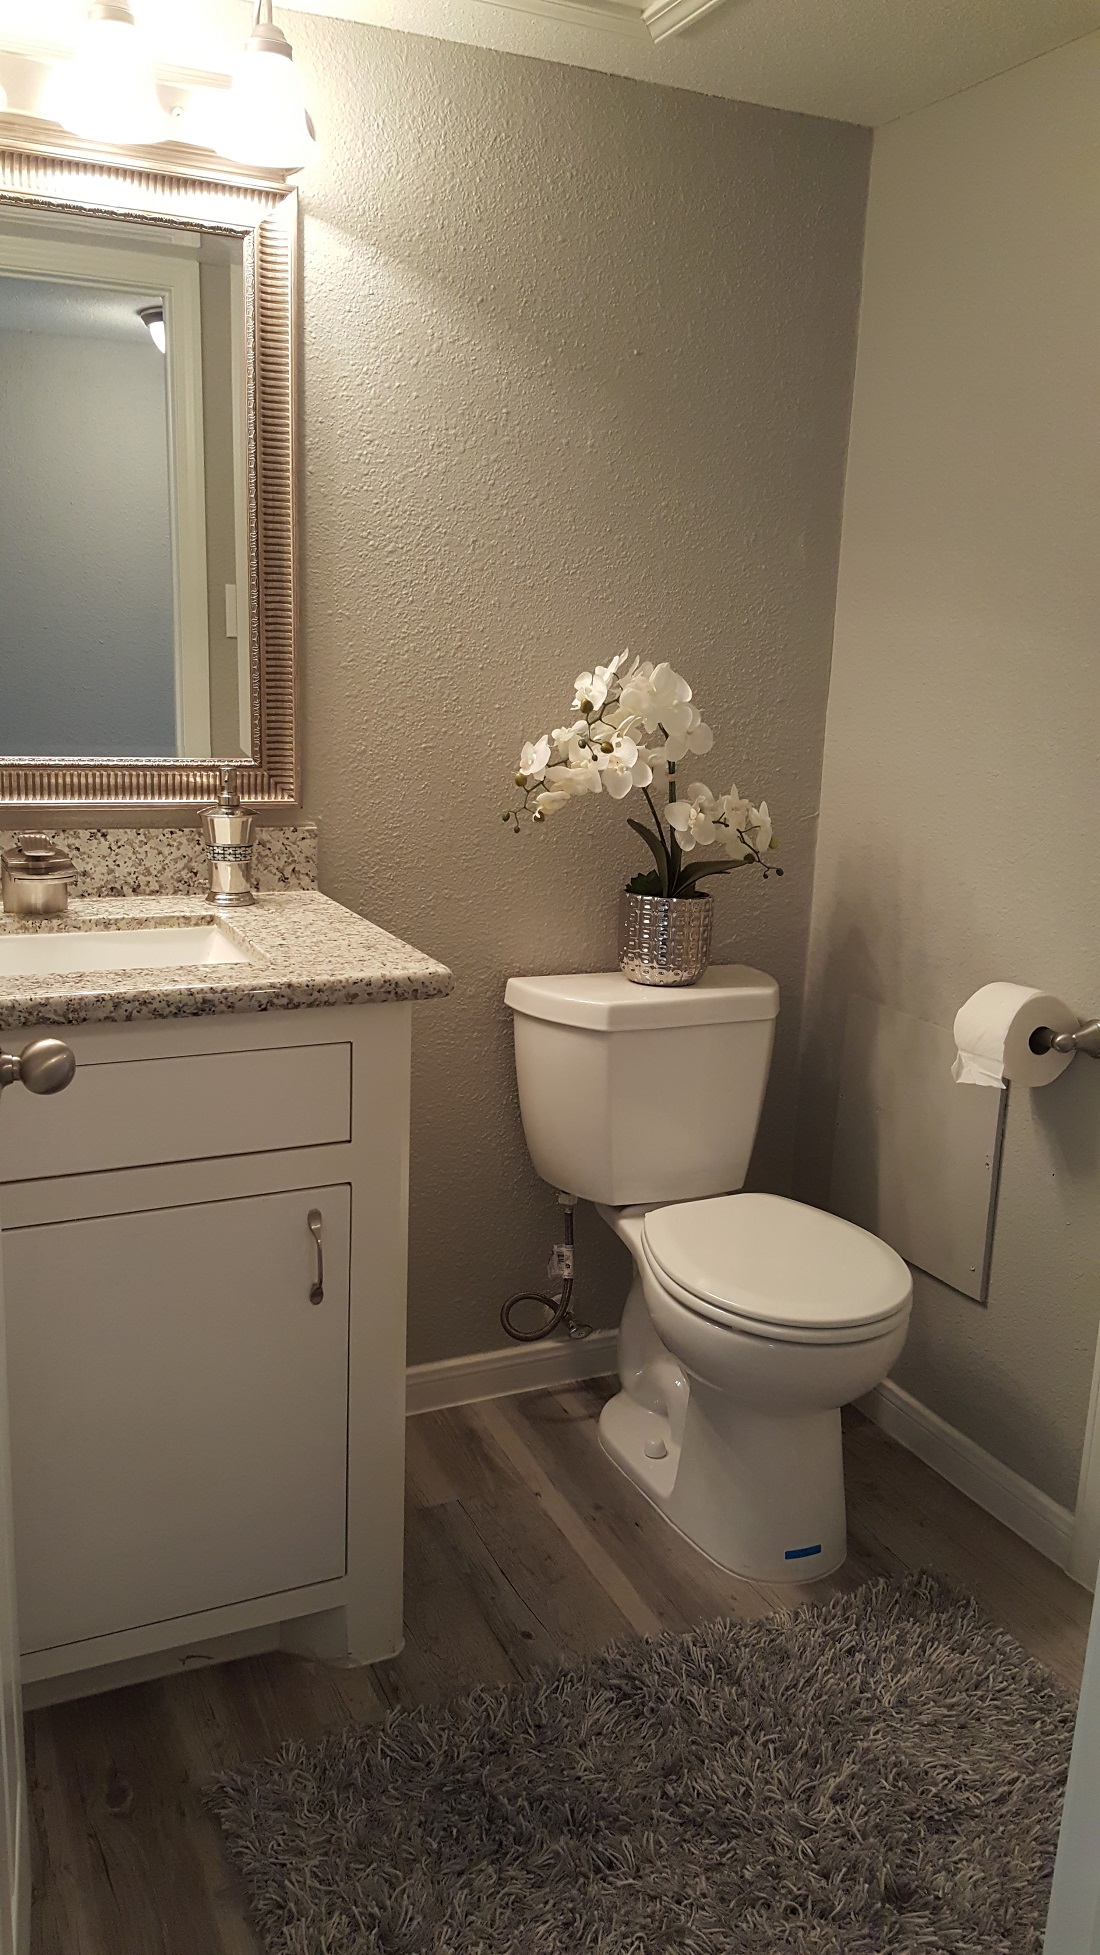 Refined Bathrooms at Grove on Gladstell Apartments in Conroe, Texas